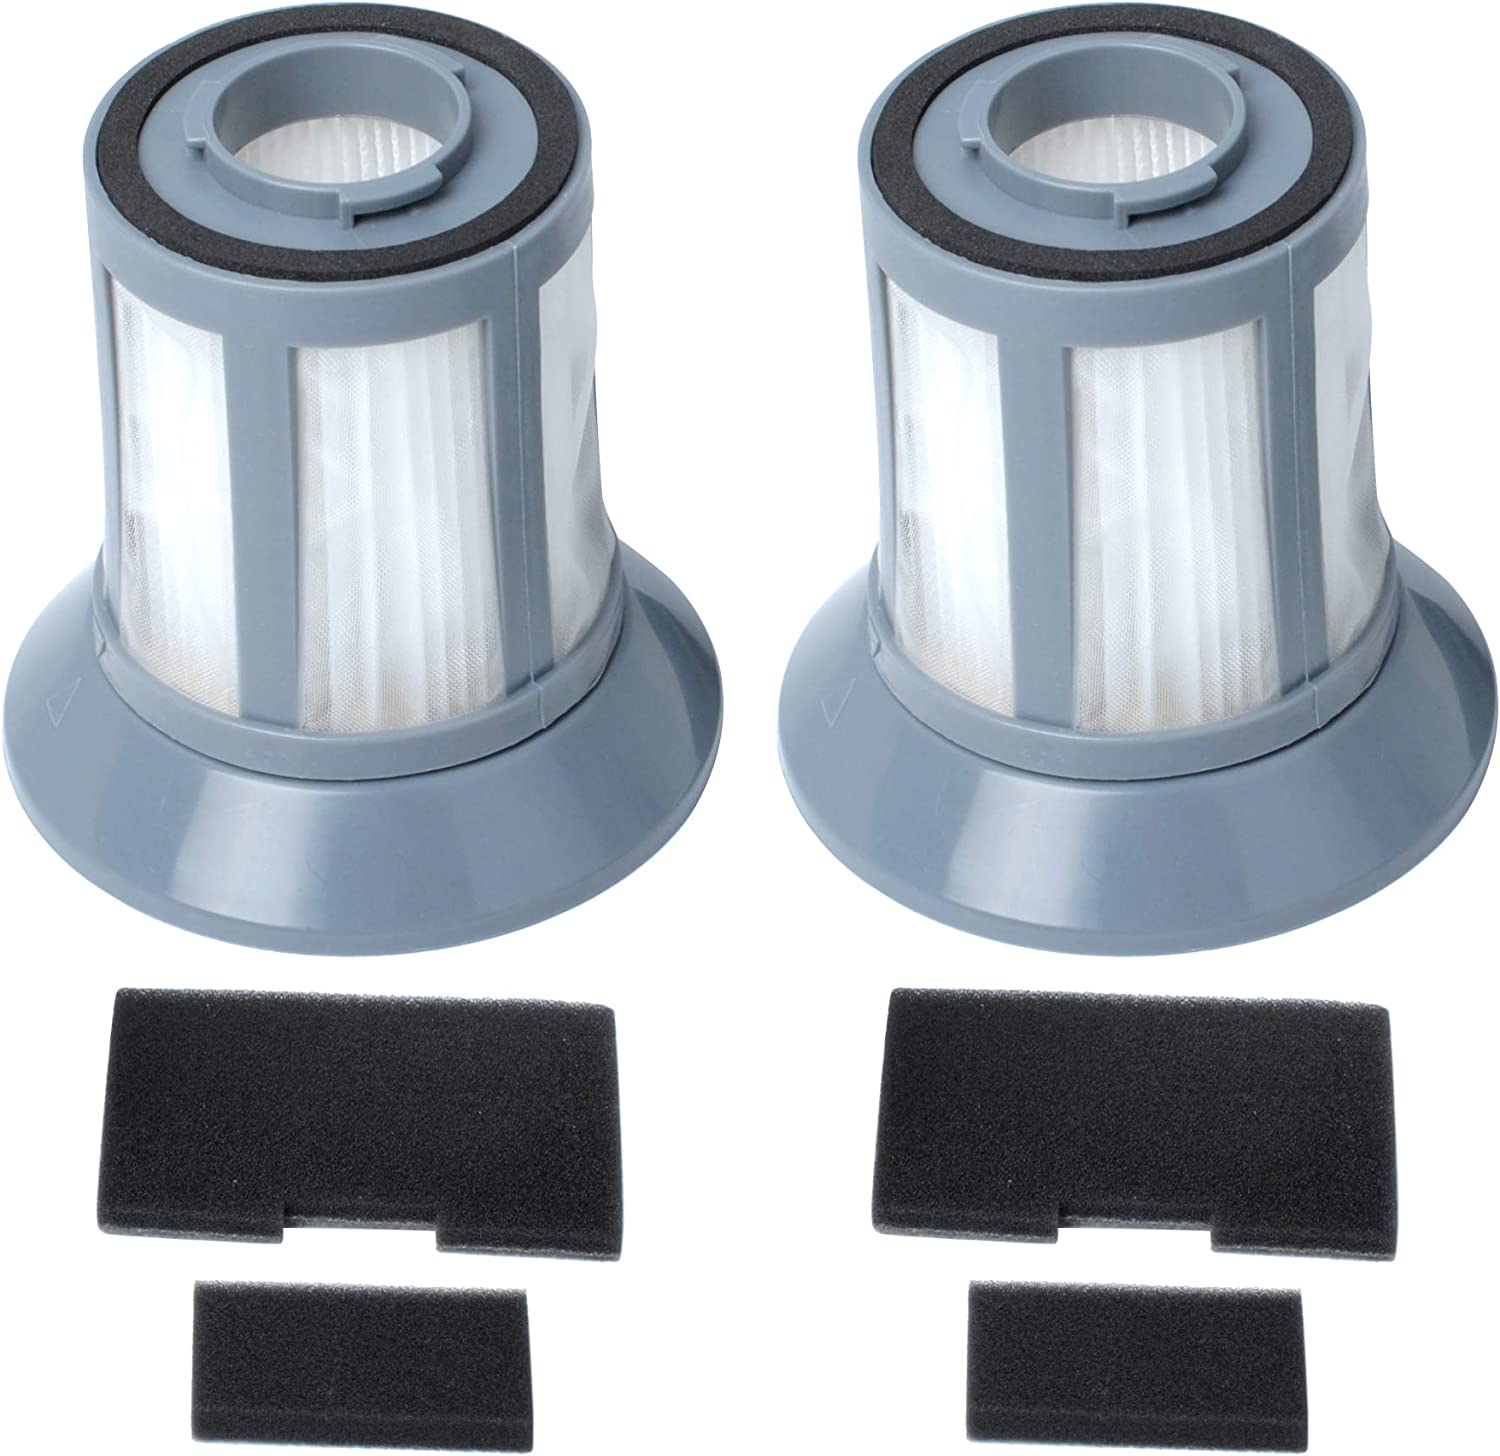 6489 Replacement Filter Compatible with Bissell 6489 64892 64894 Zing Bagless Canister Vacuums Cleaner,Part # 203-1772, 203-1771, 203-1534 Dirt Cup Filter Kit (2 Pack)